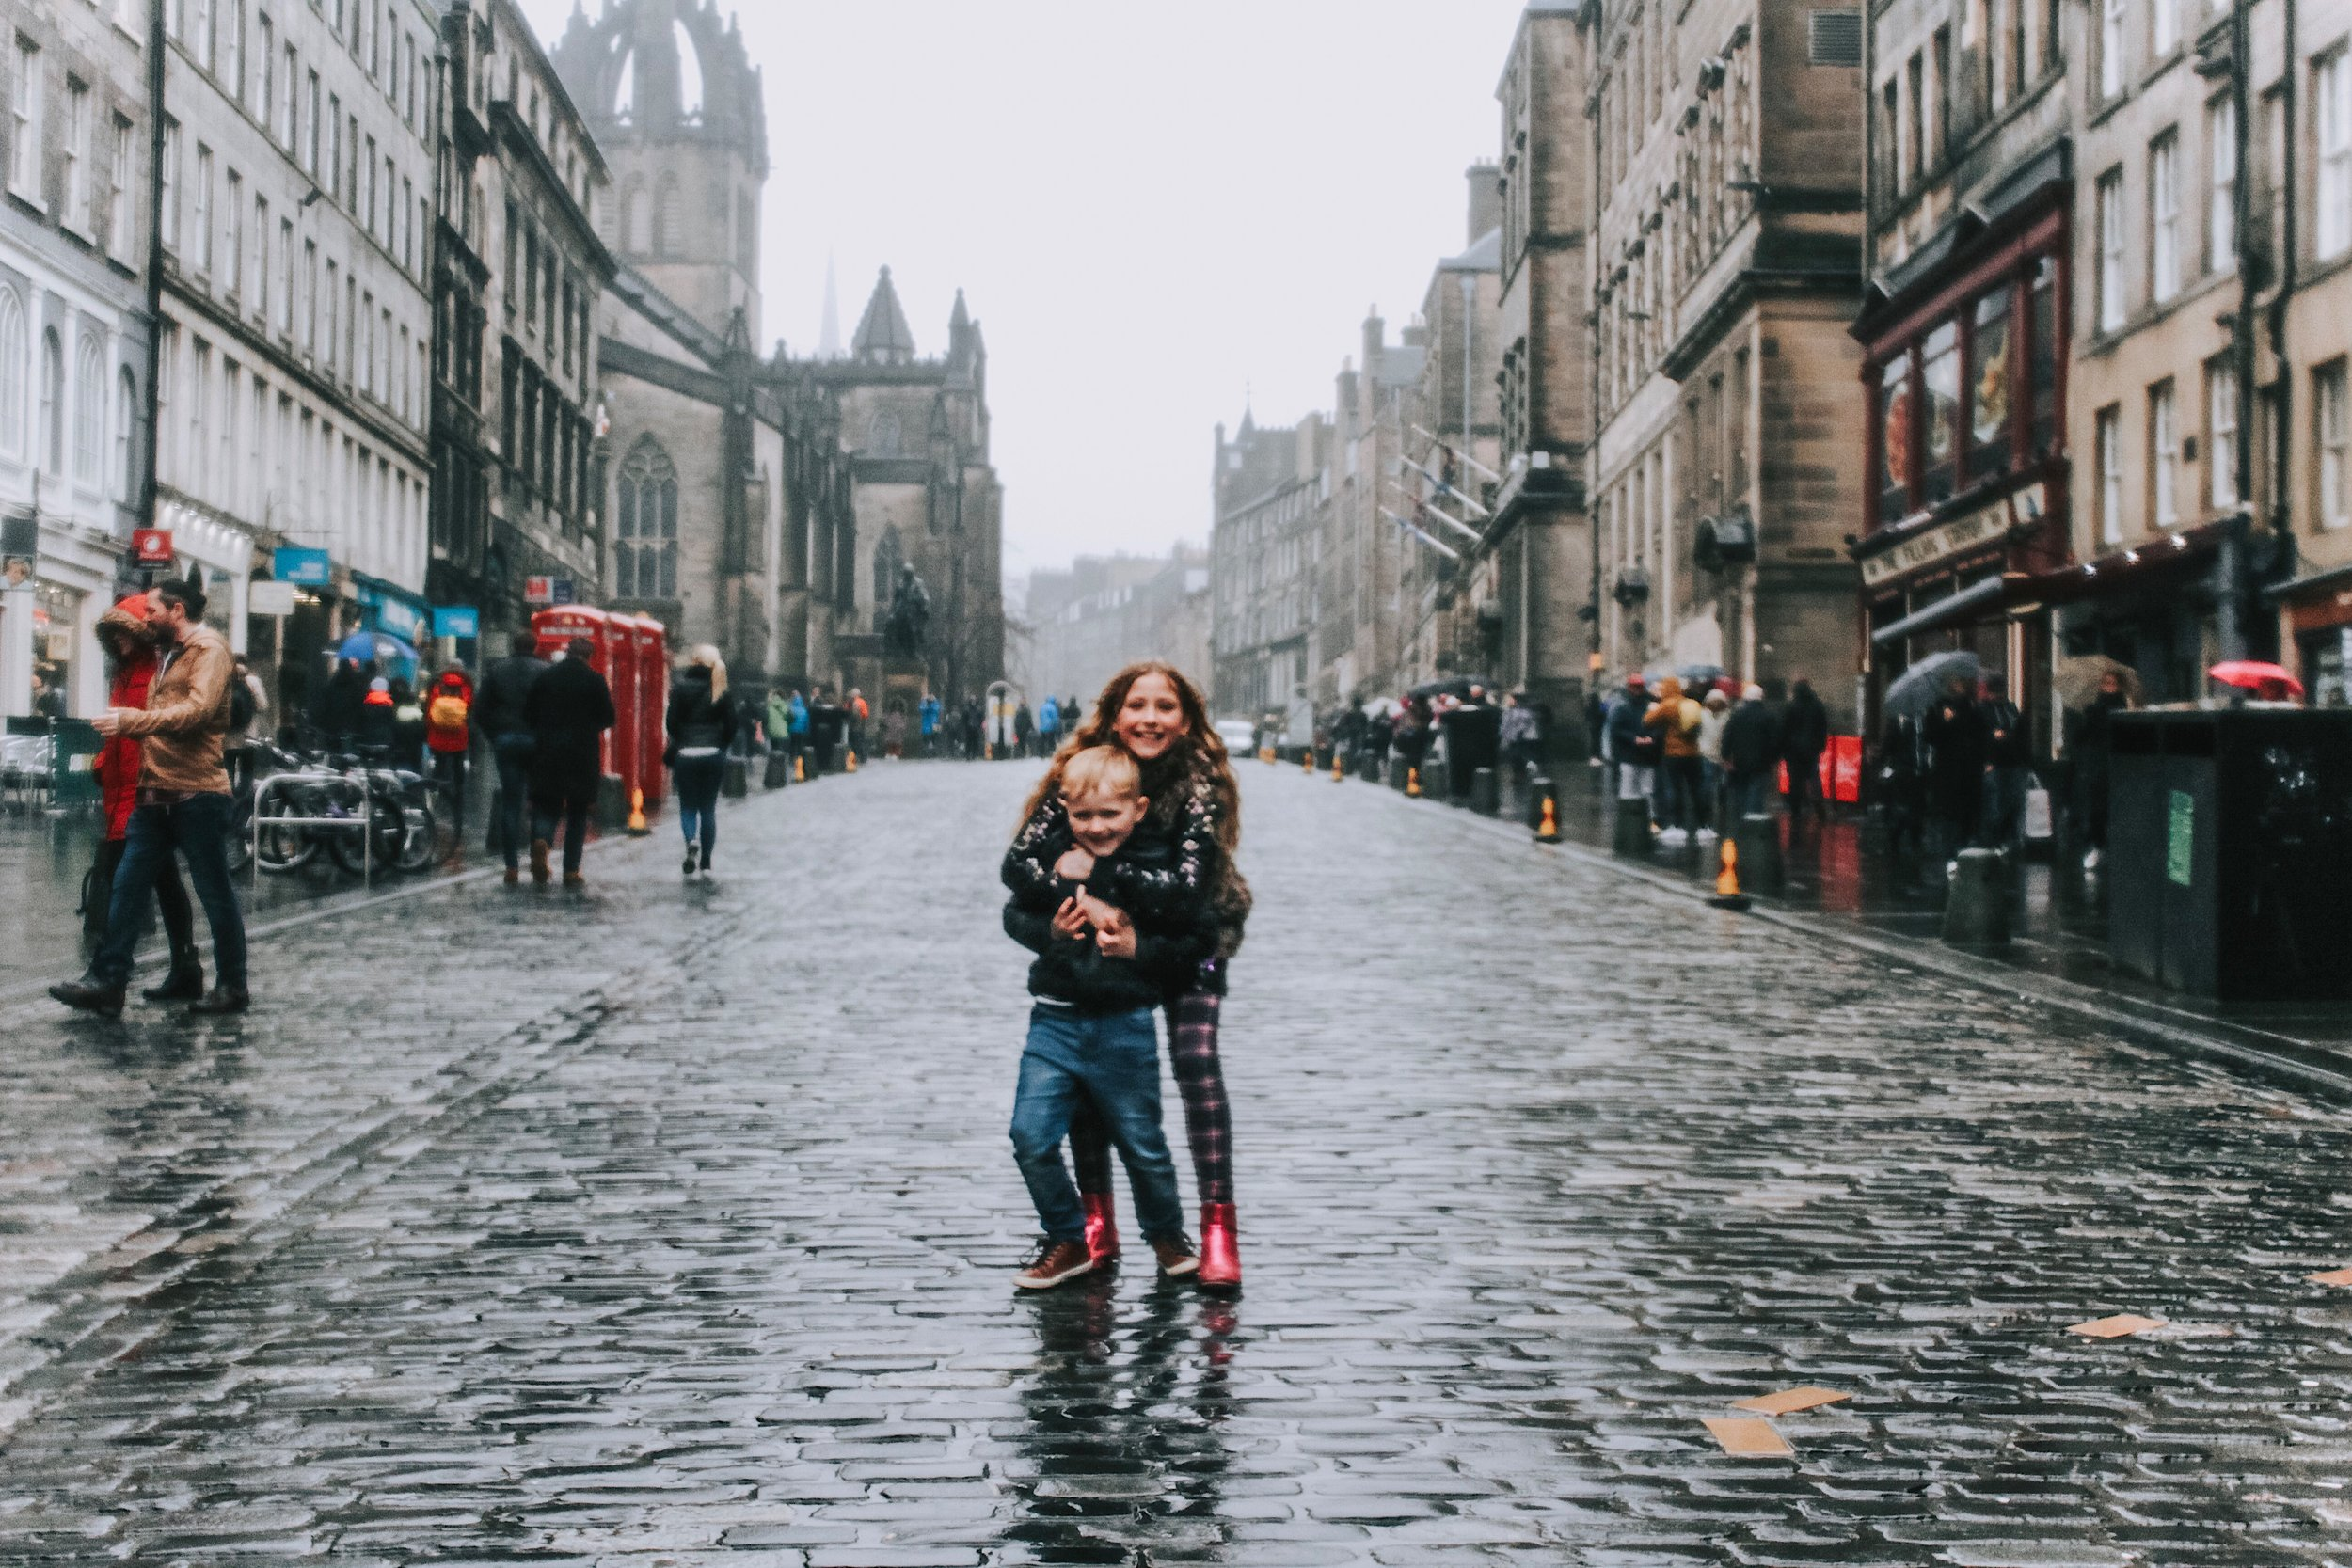 royal mile edinburgh.JPG